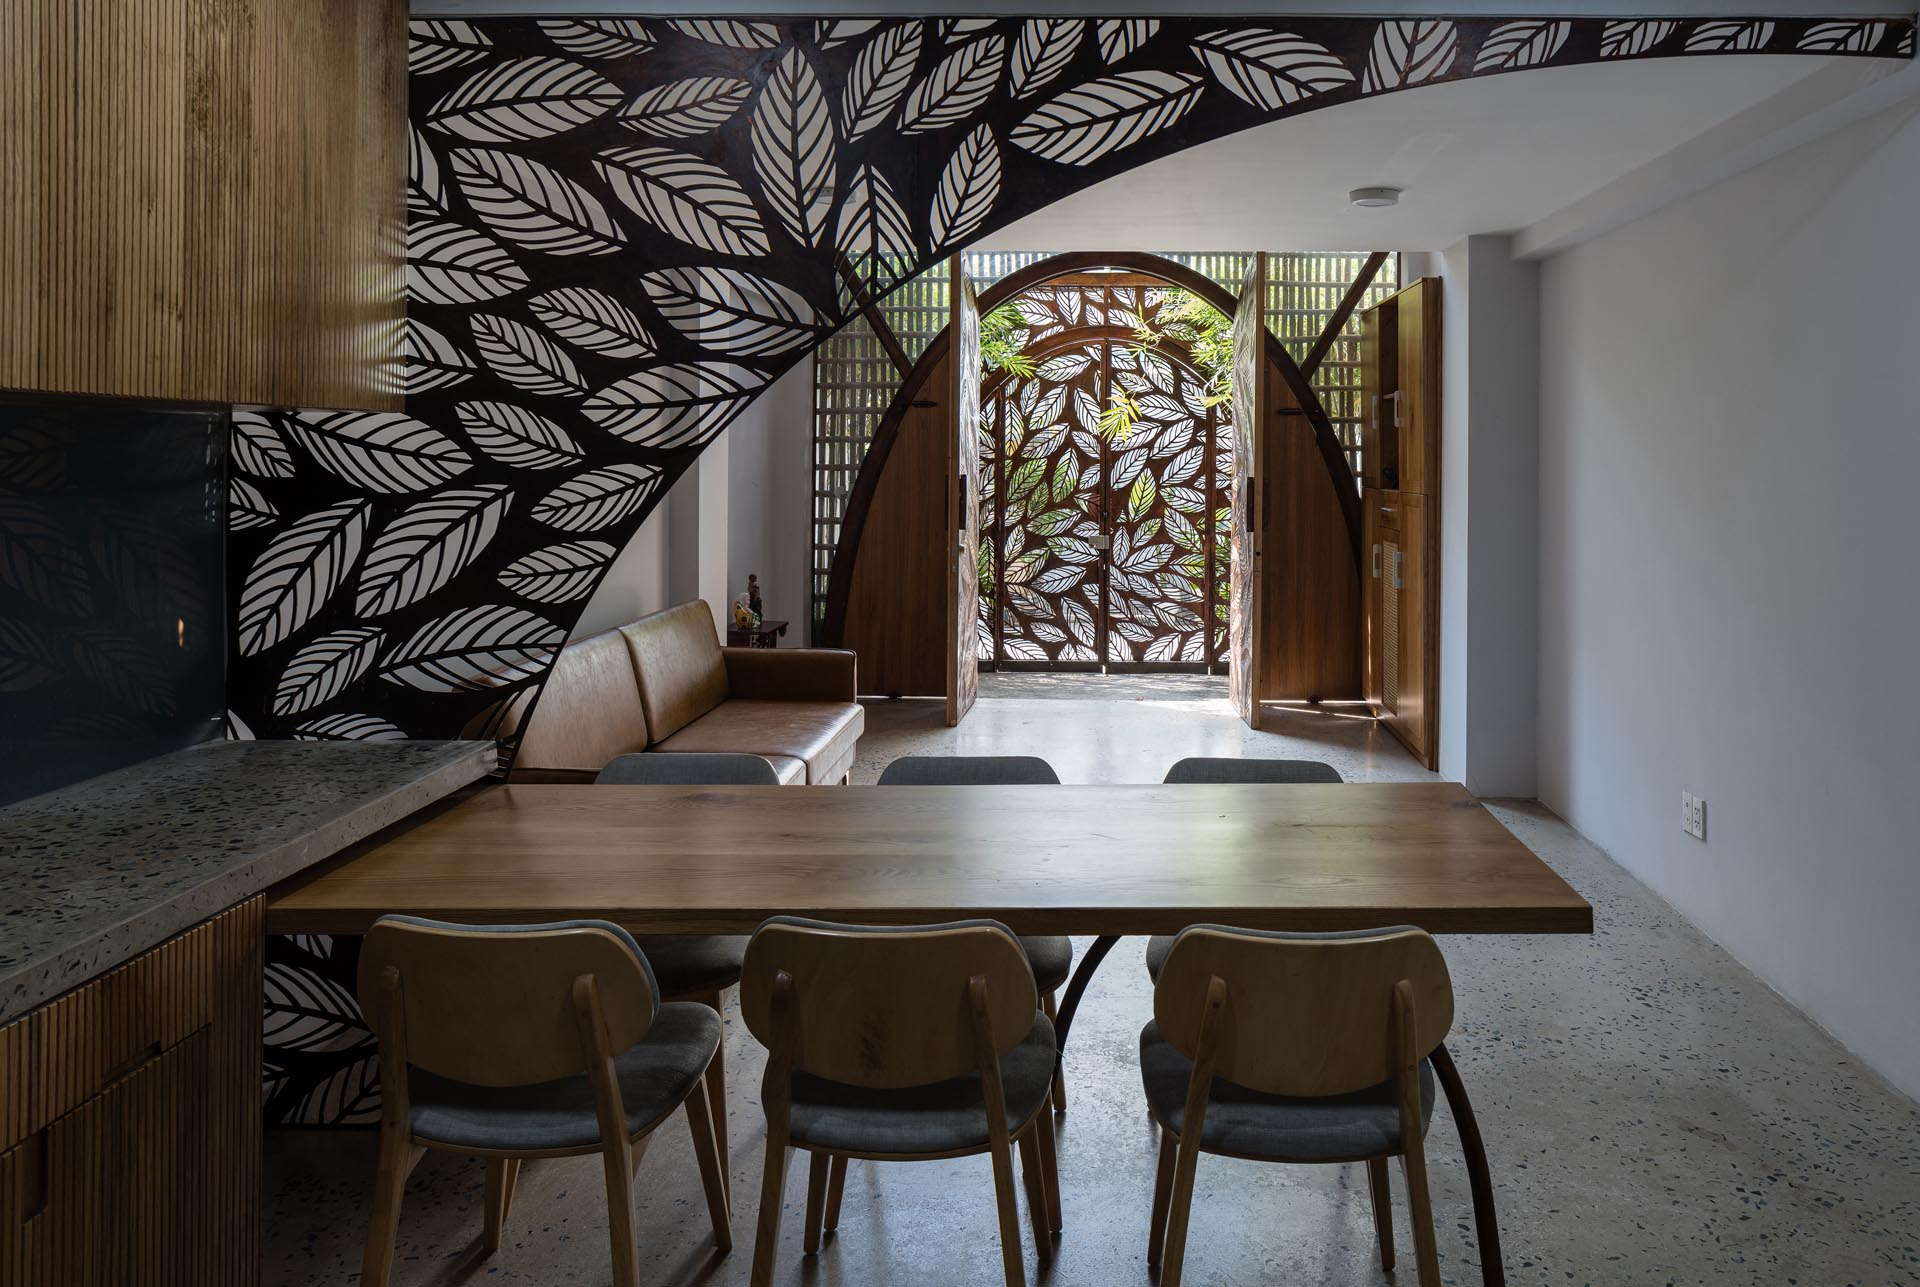 Stepping through to the interior of this modern house, there's a partial screen that acts as a divider between the living room and the dining area / kitchen.